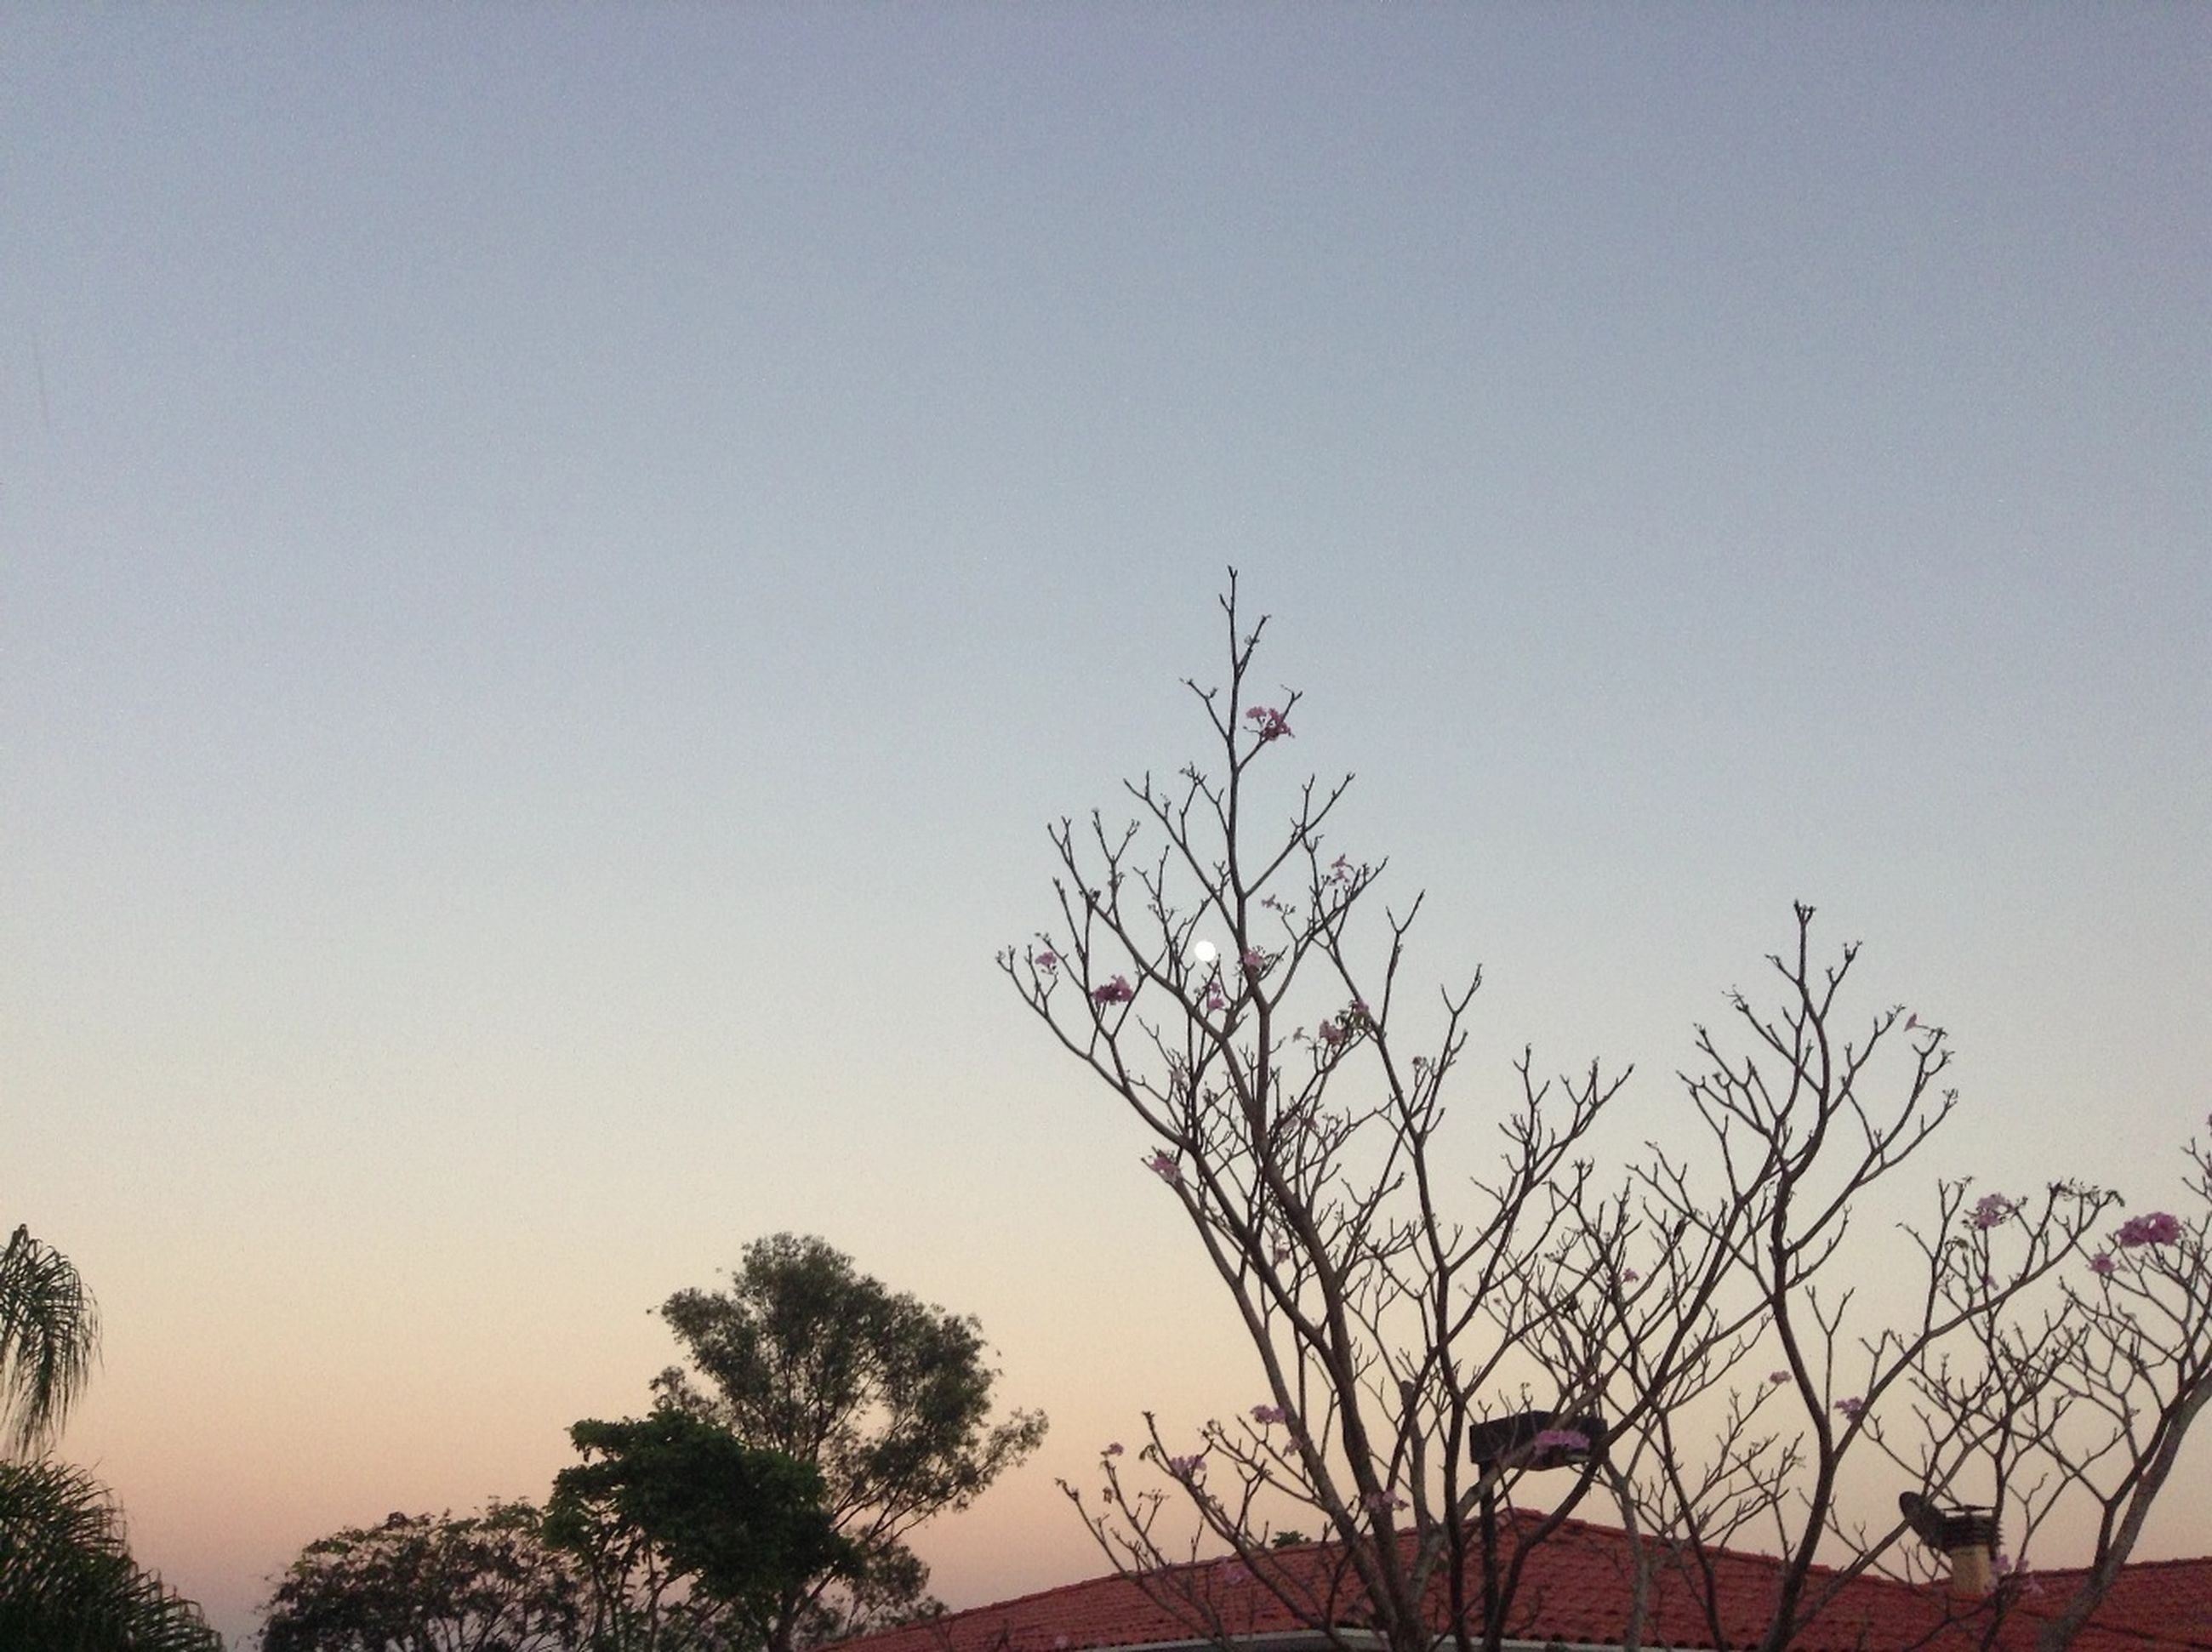 clear sky, tree, low angle view, copy space, branch, bare tree, silhouette, nature, tranquility, growth, beauty in nature, high section, scenics, sunset, outdoors, no people, tranquil scene, sky, dusk, treetop